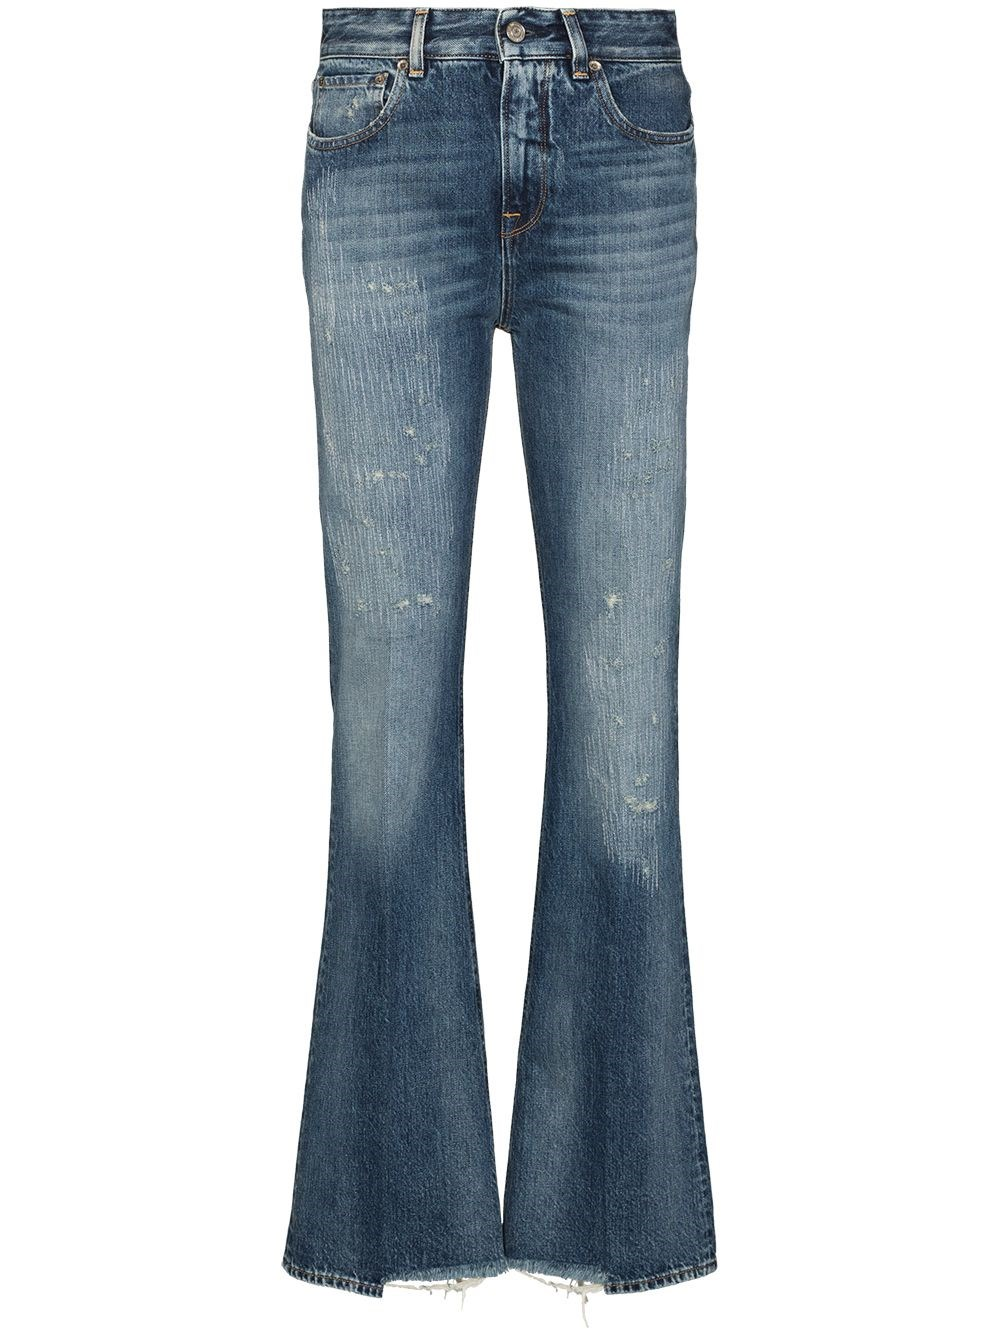 GOLDEN GOOSE DELUXE BRAND Blue Distressed-Effect Bootcut Jeans